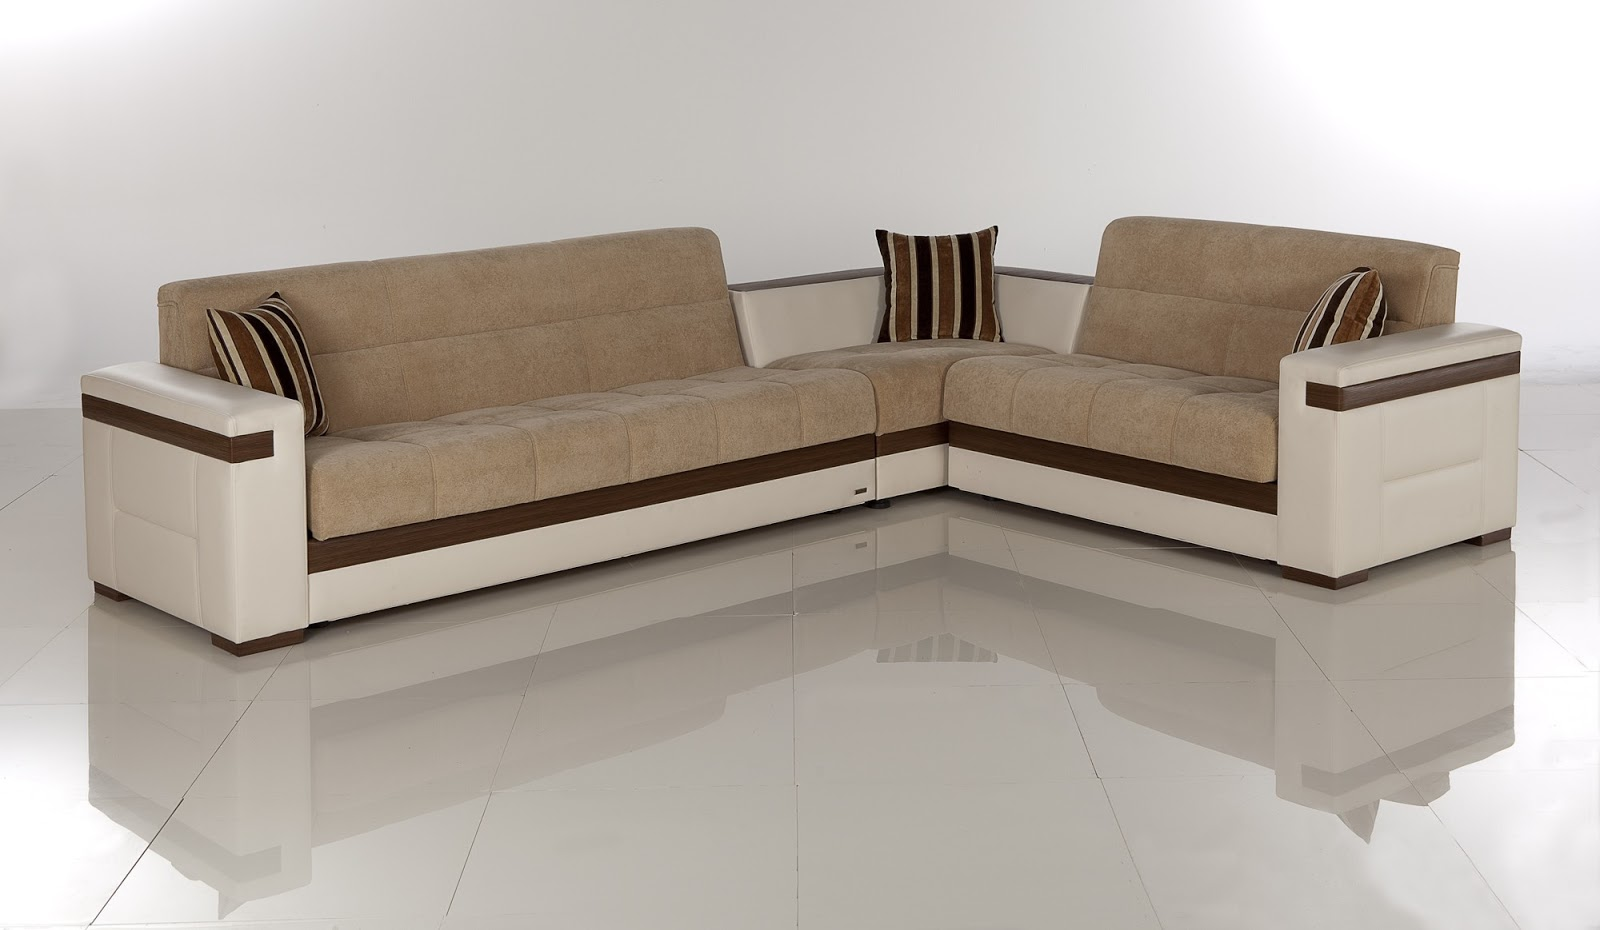 Sofa Designs Ideas